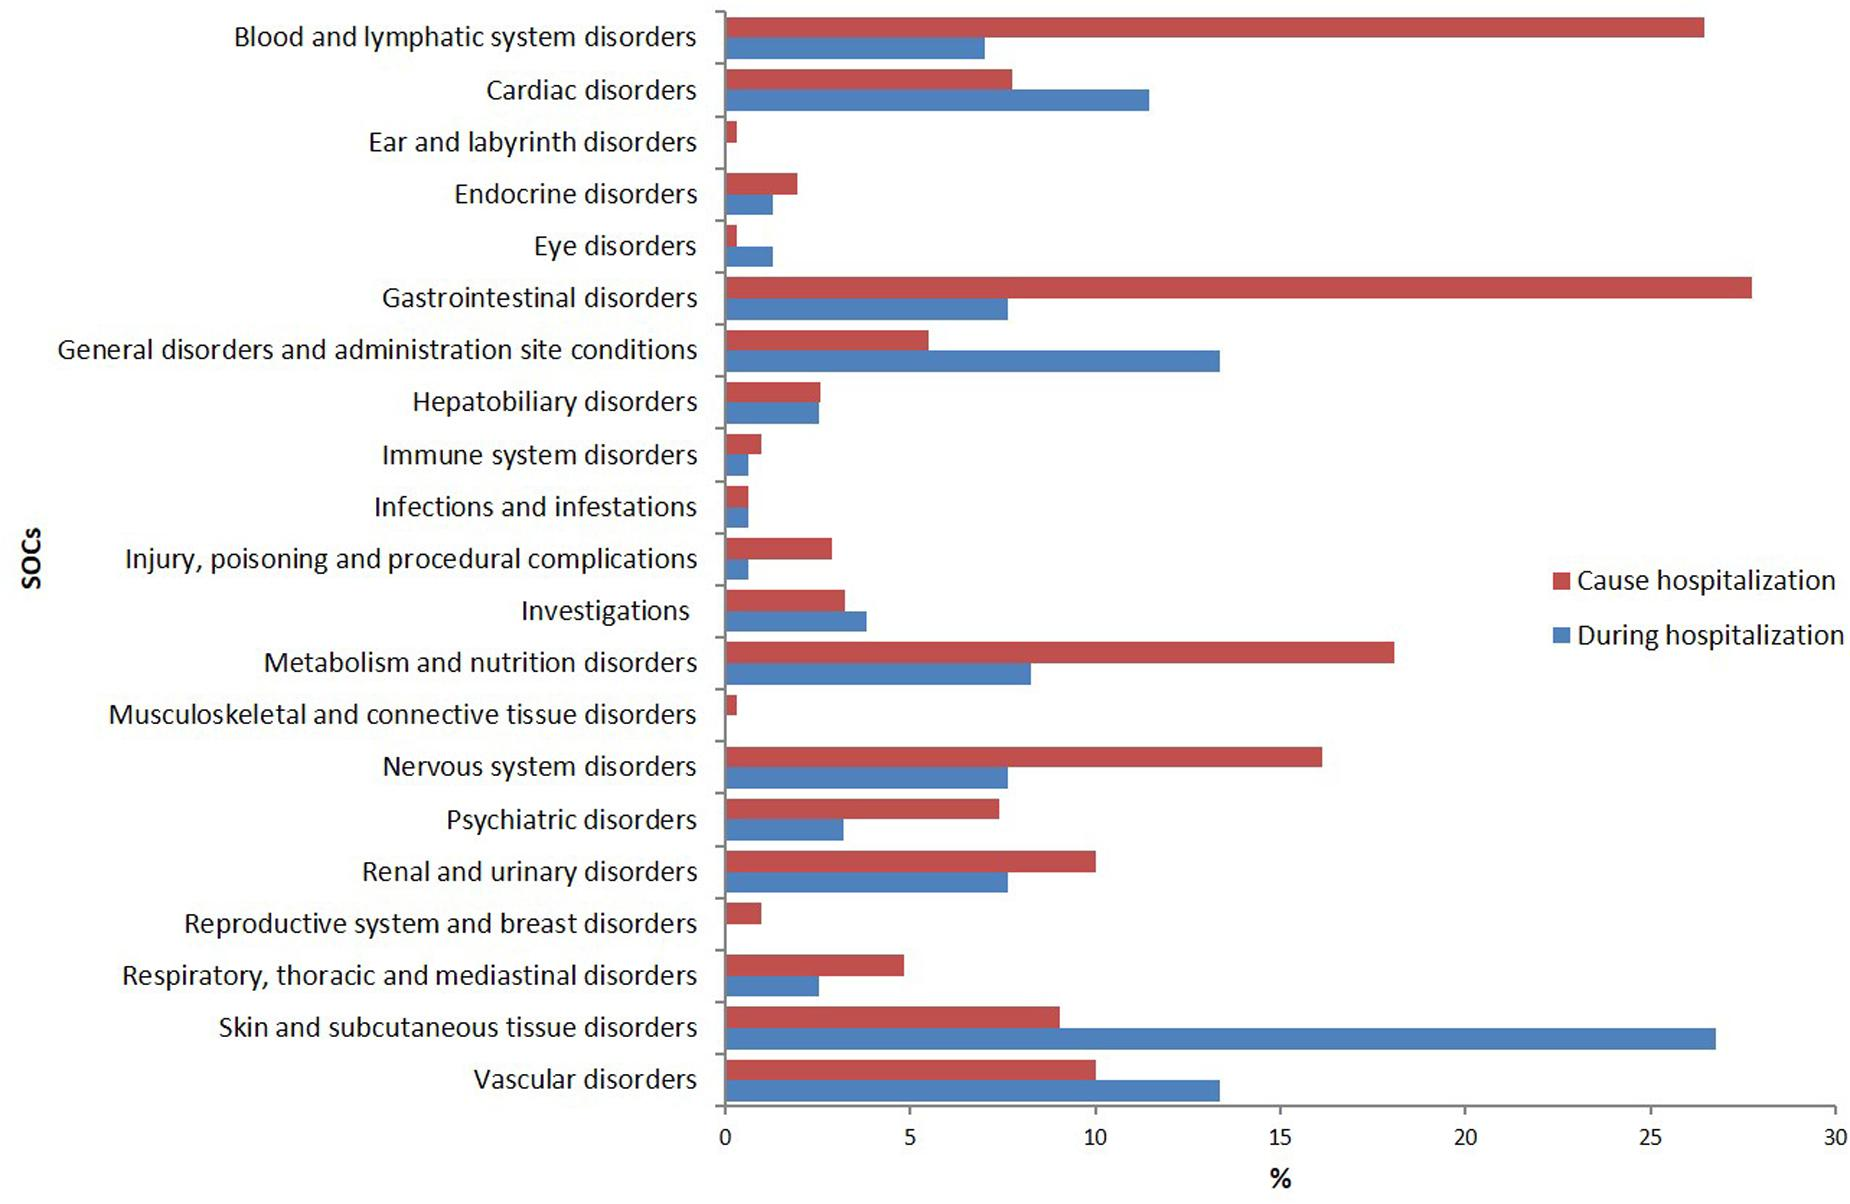 Frontiers | Adverse Drug Reactions in Hospitalized Patients: Results